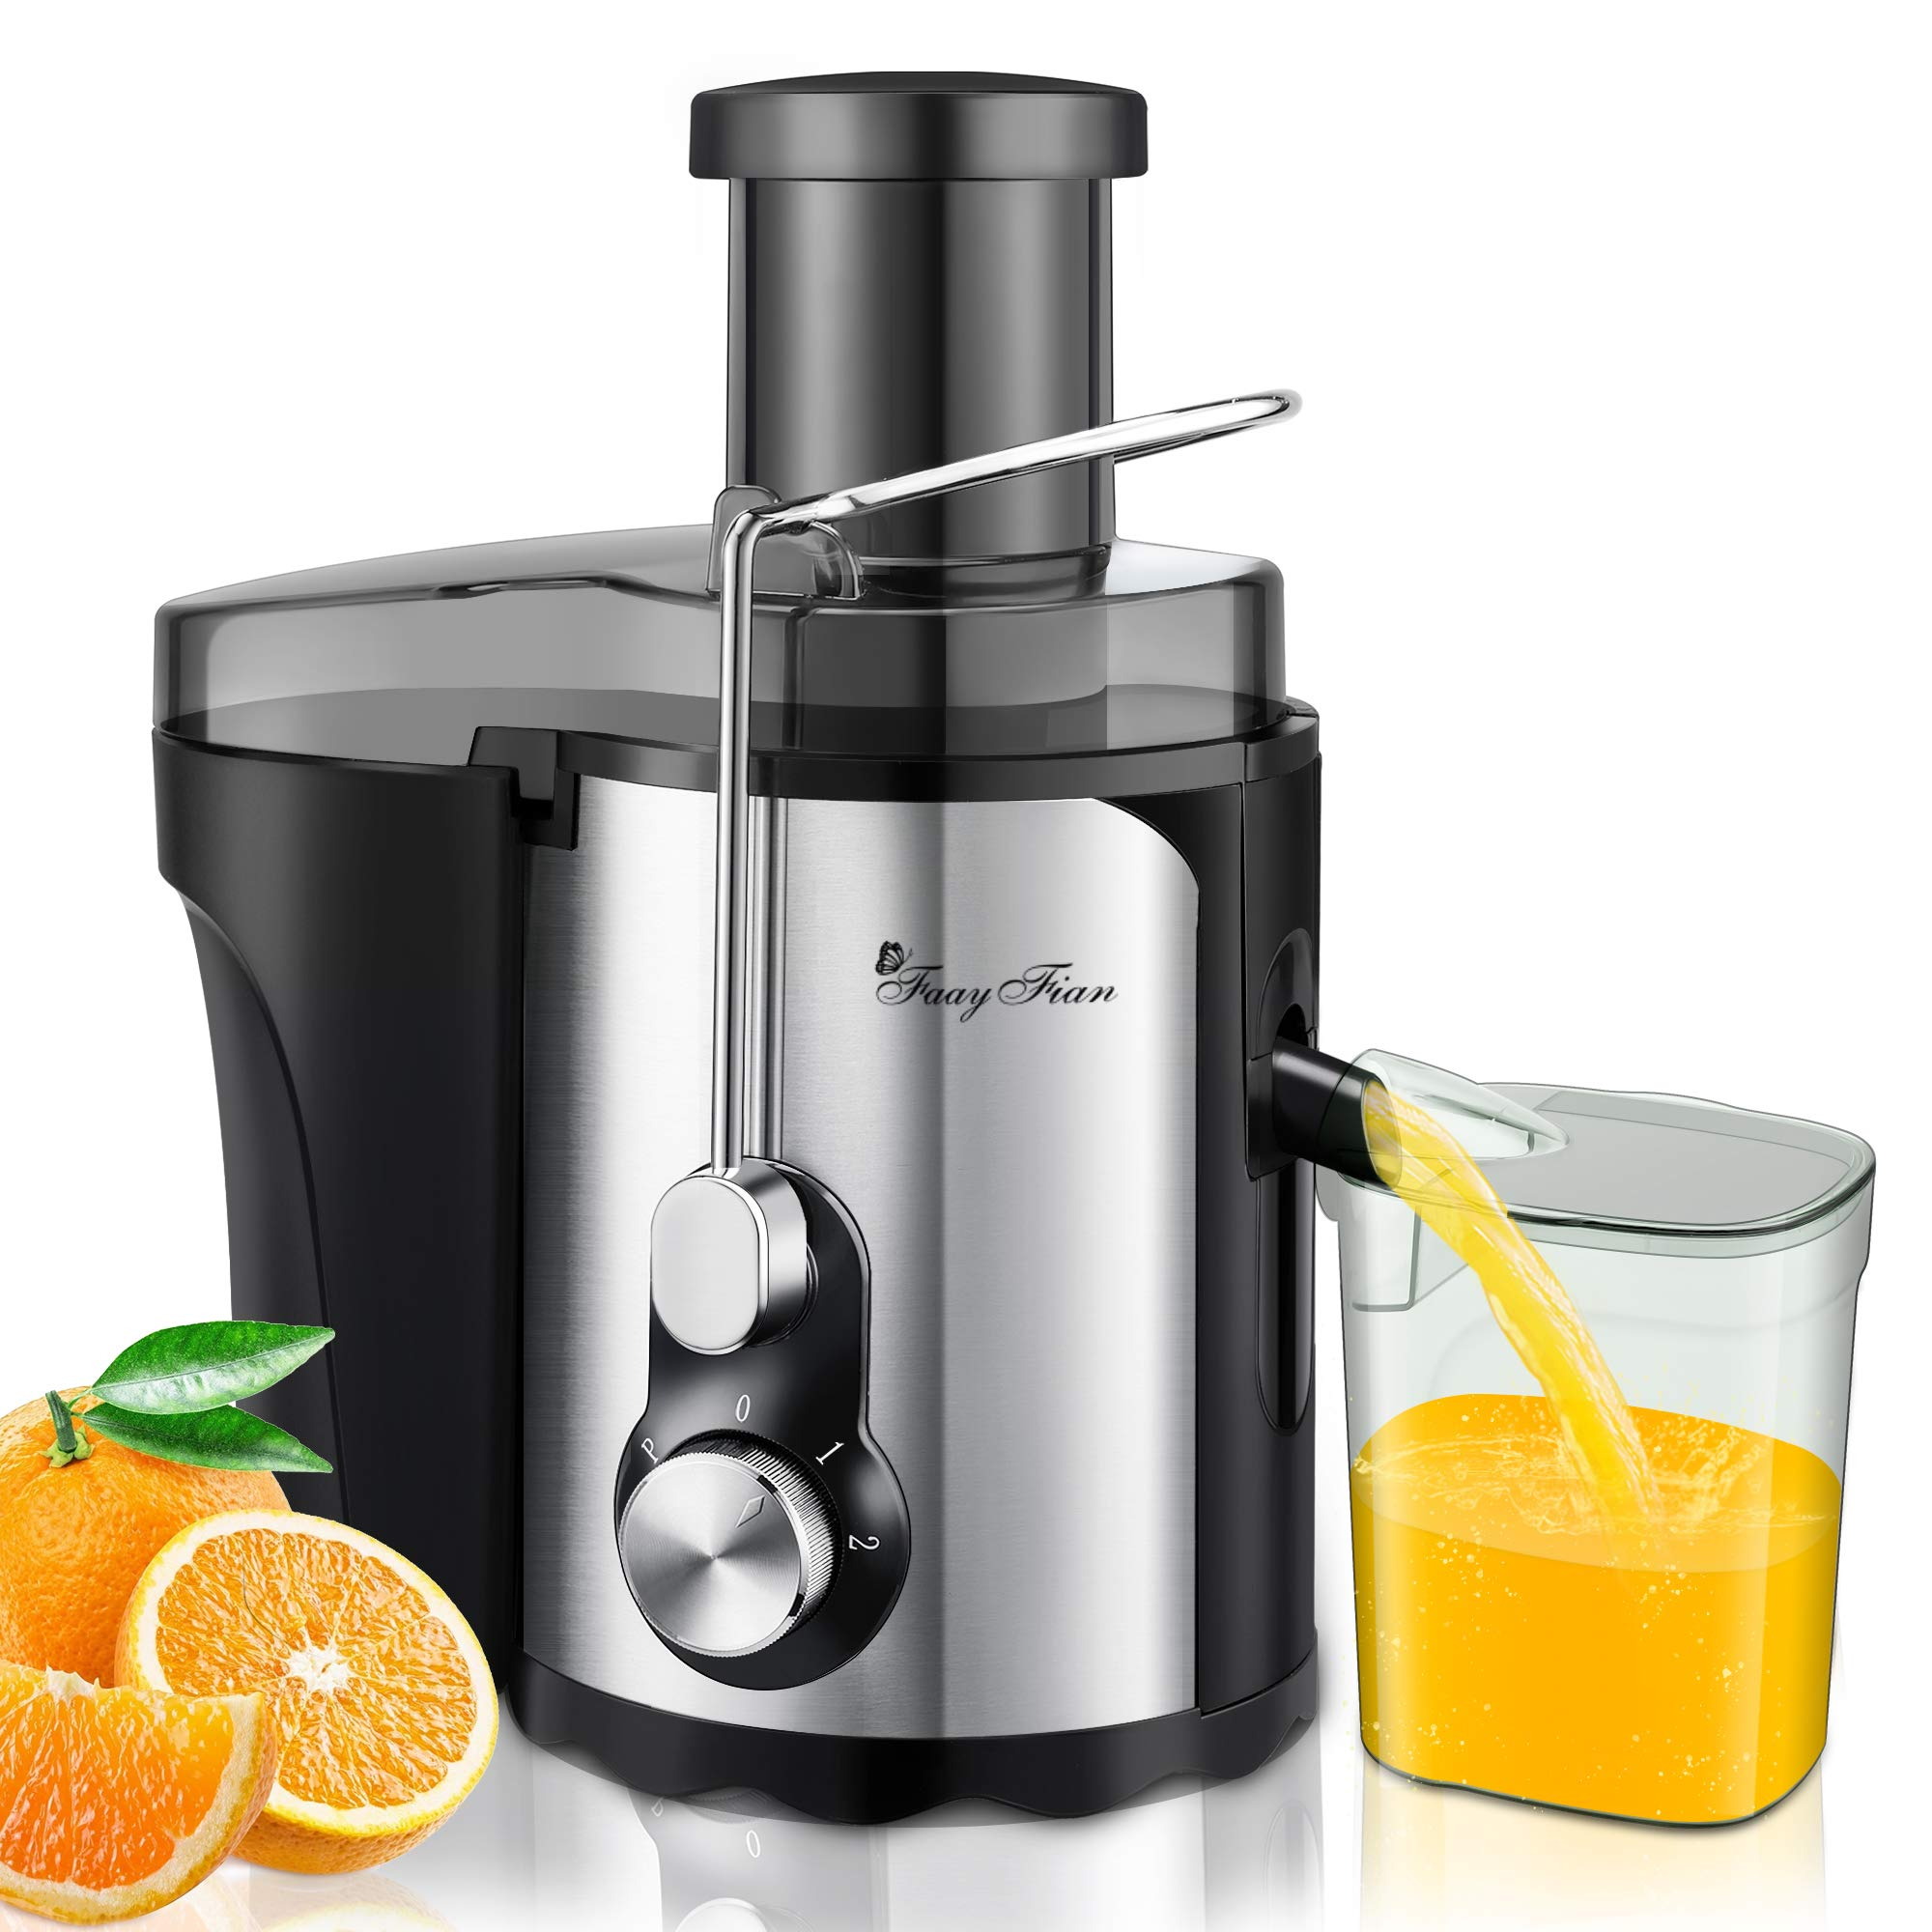 Juicer Machines Vegetable and Fruit Small Compact 600W Centrifugal juicer Quick Extract